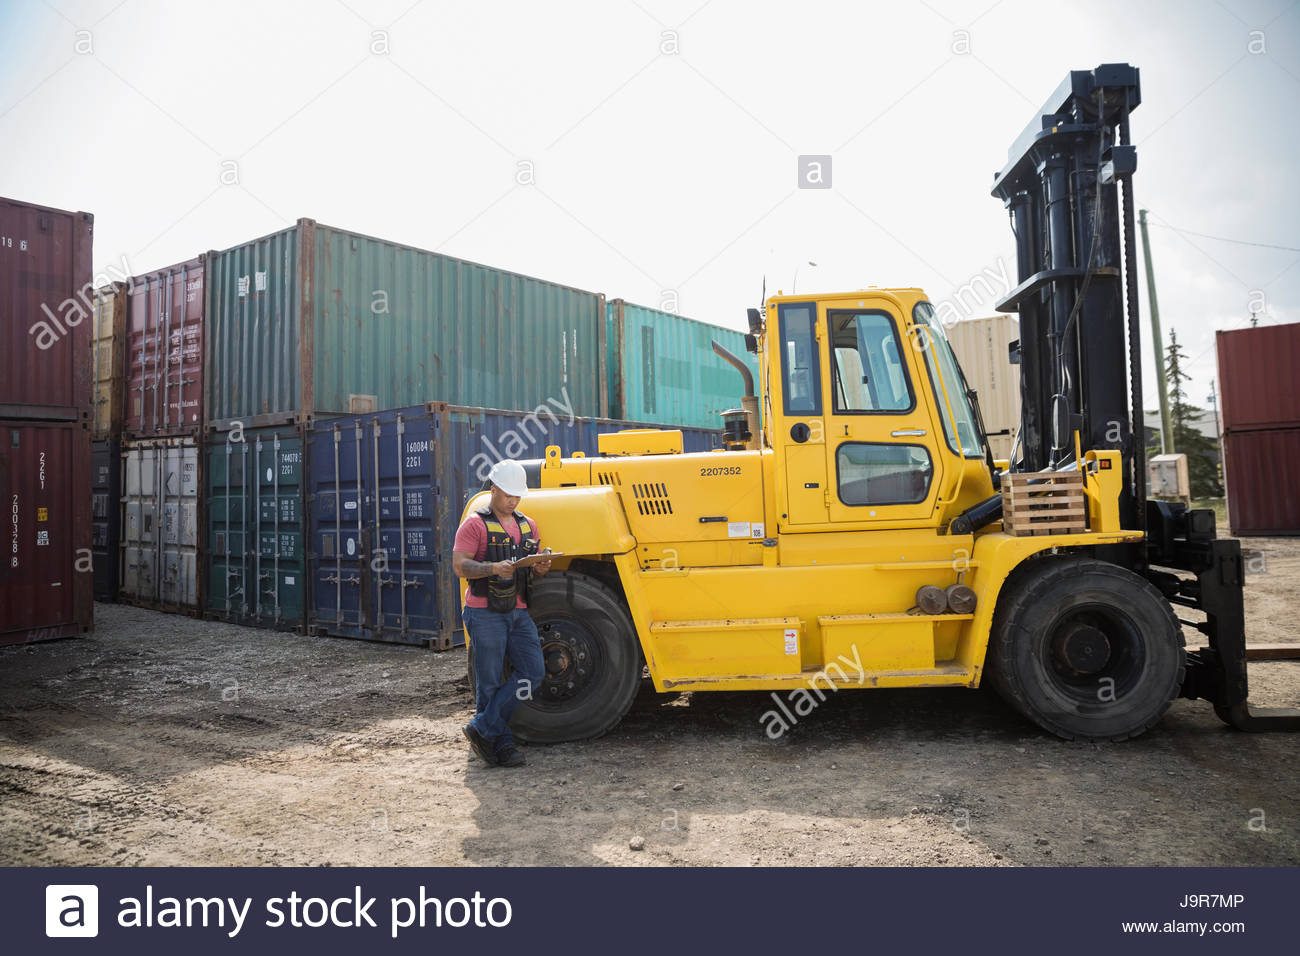 Male worker with clipboard leaning on forklift in sunny industrial container yard - Stock Image